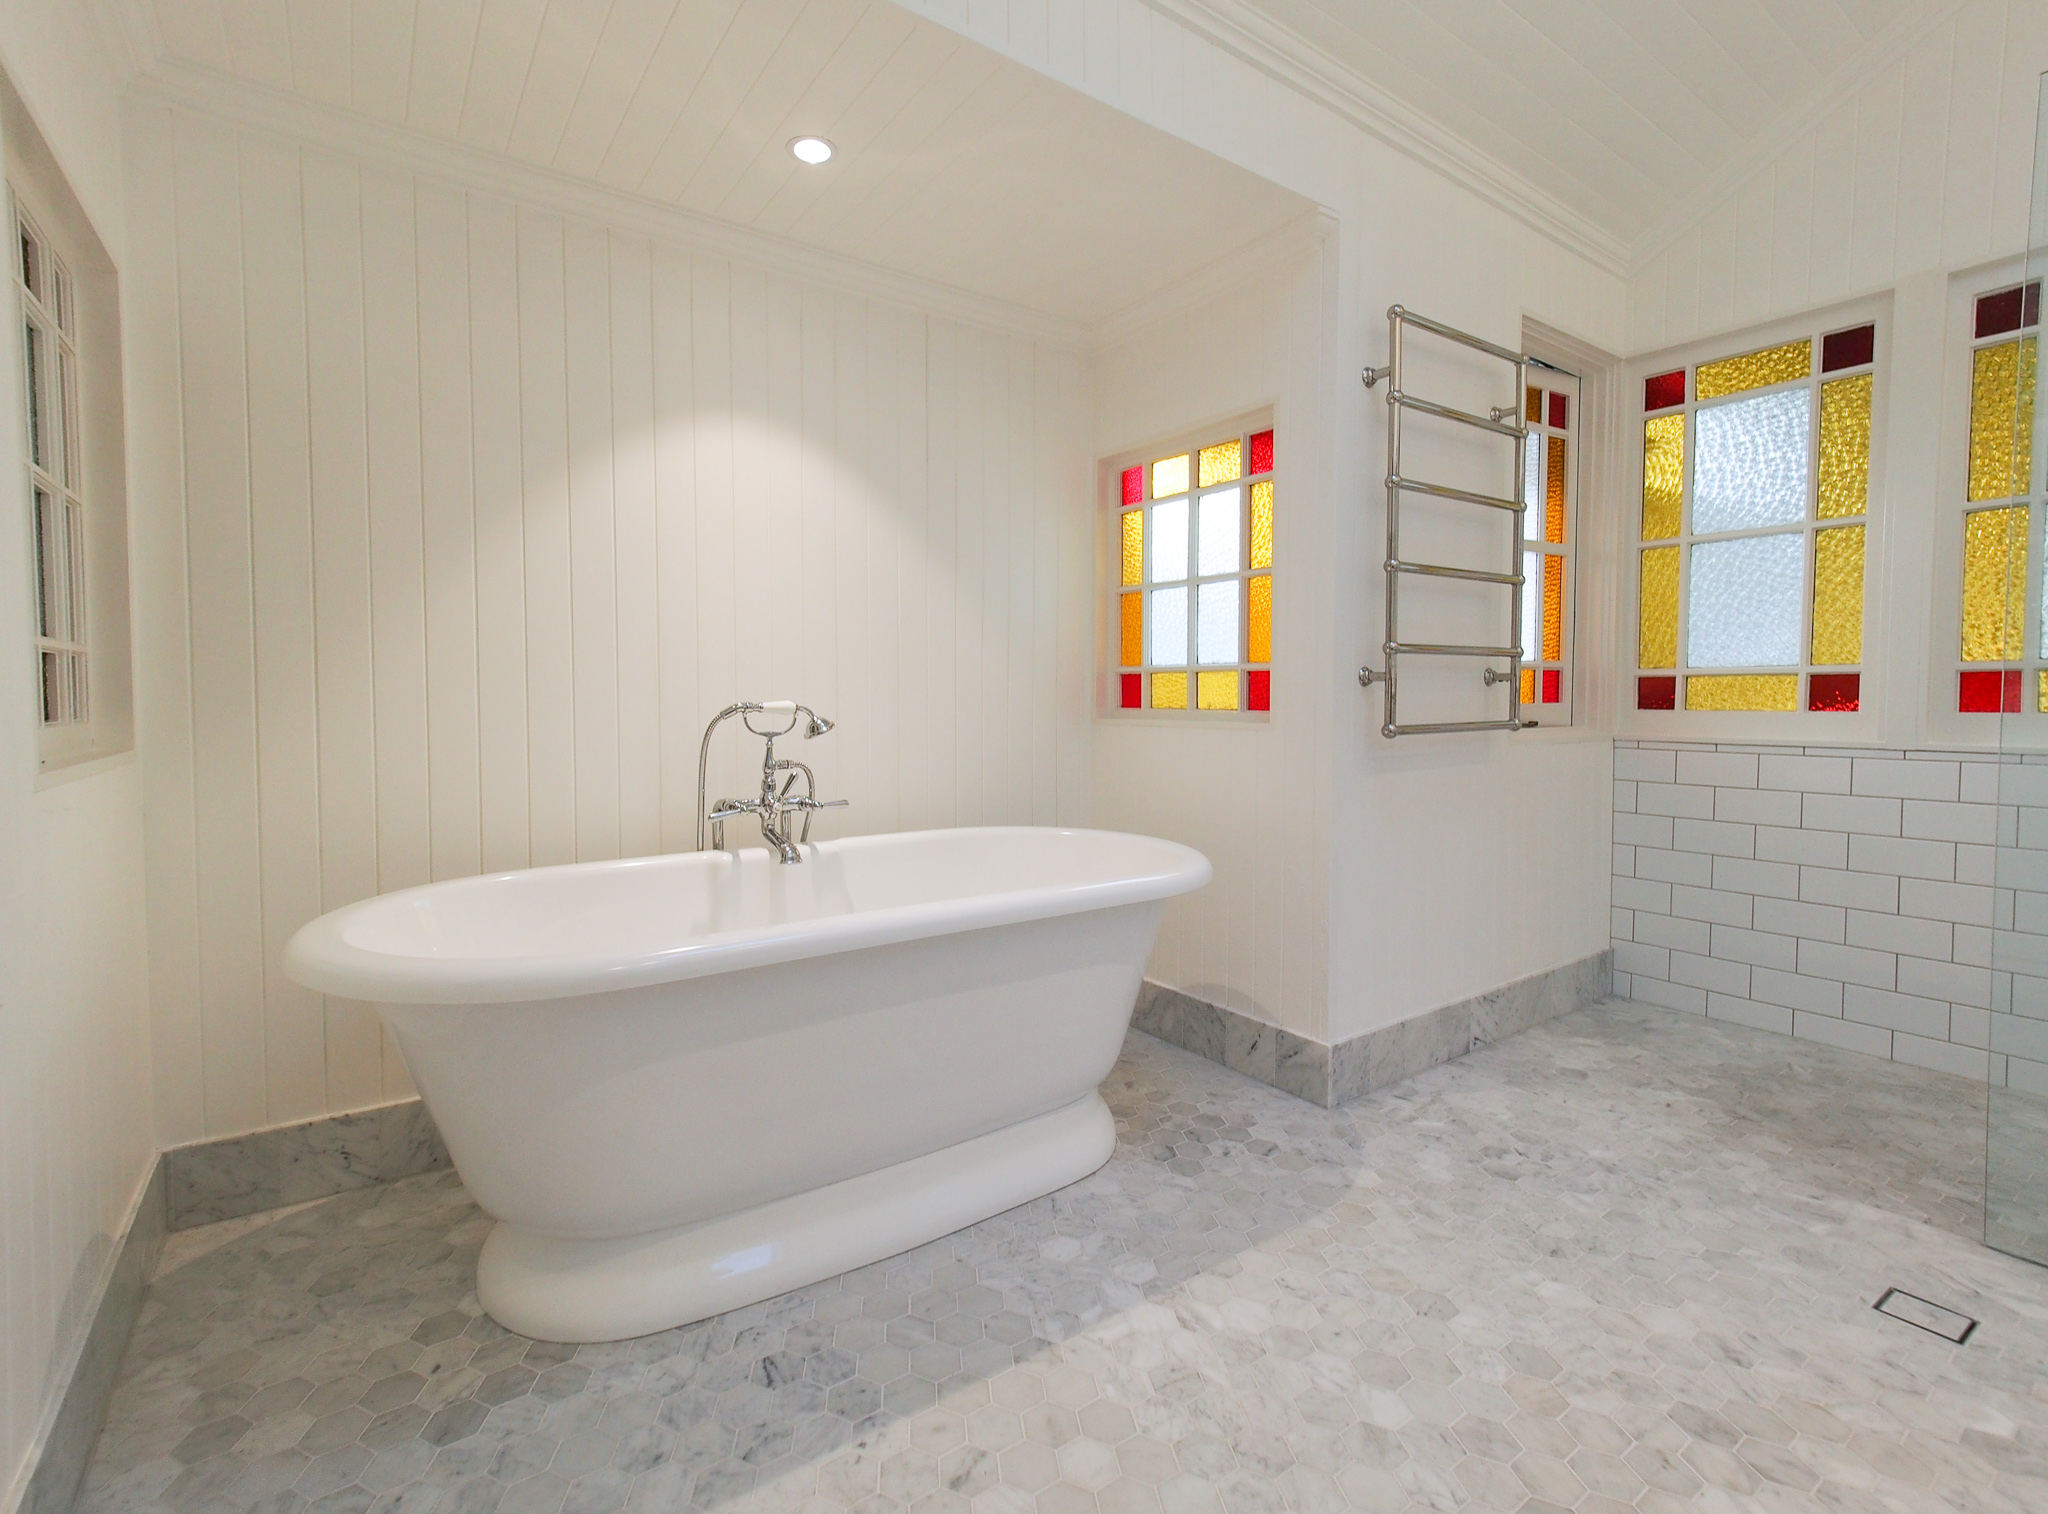 view our beautiful bathroom gallery featuring brisbane properties, Home design